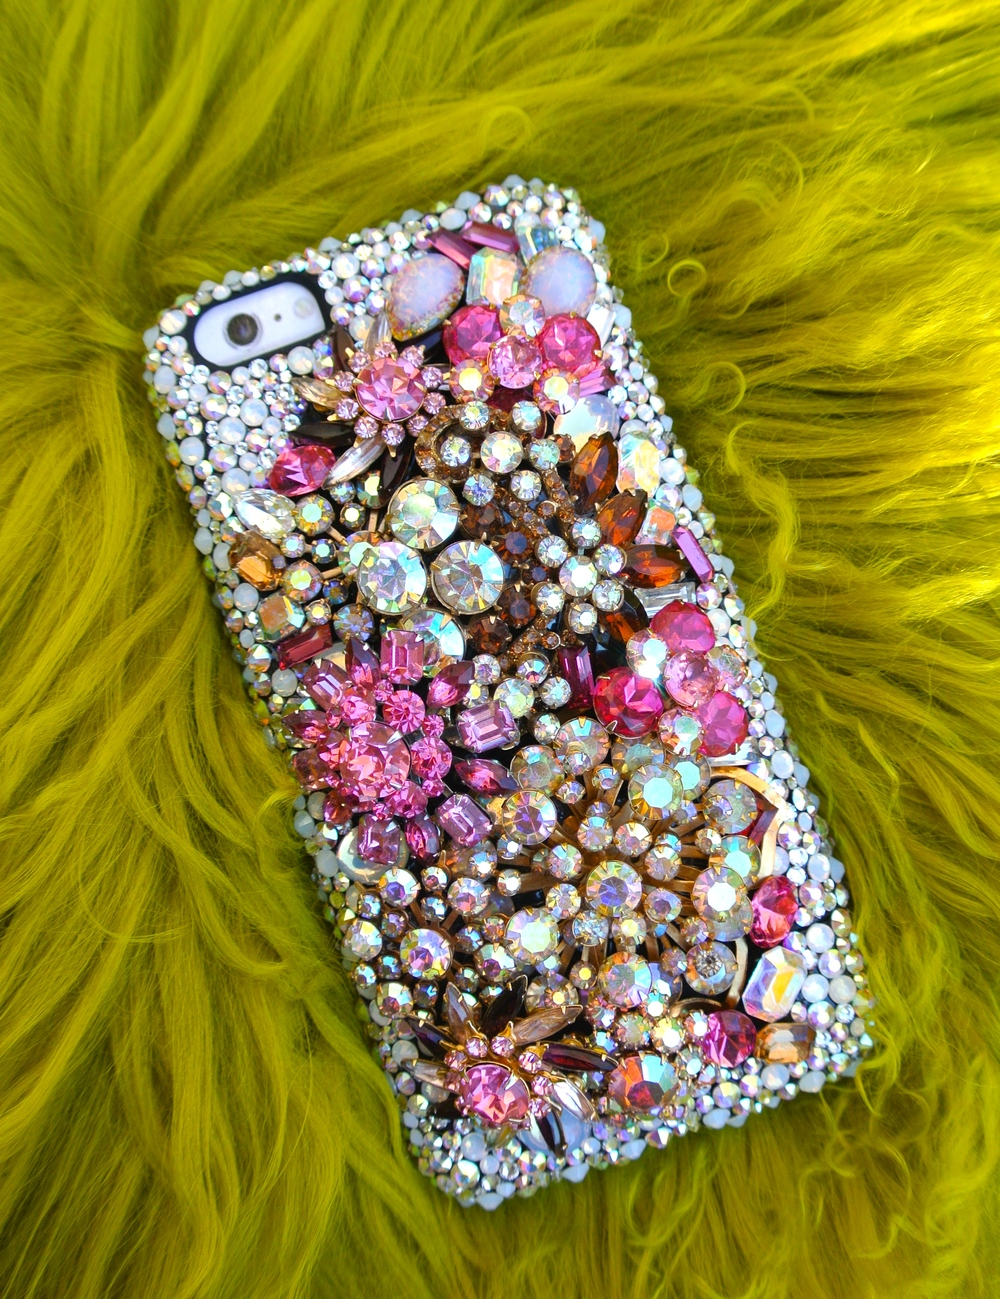 custom-iphone6plus-case-coleen-11.2.15.JPG